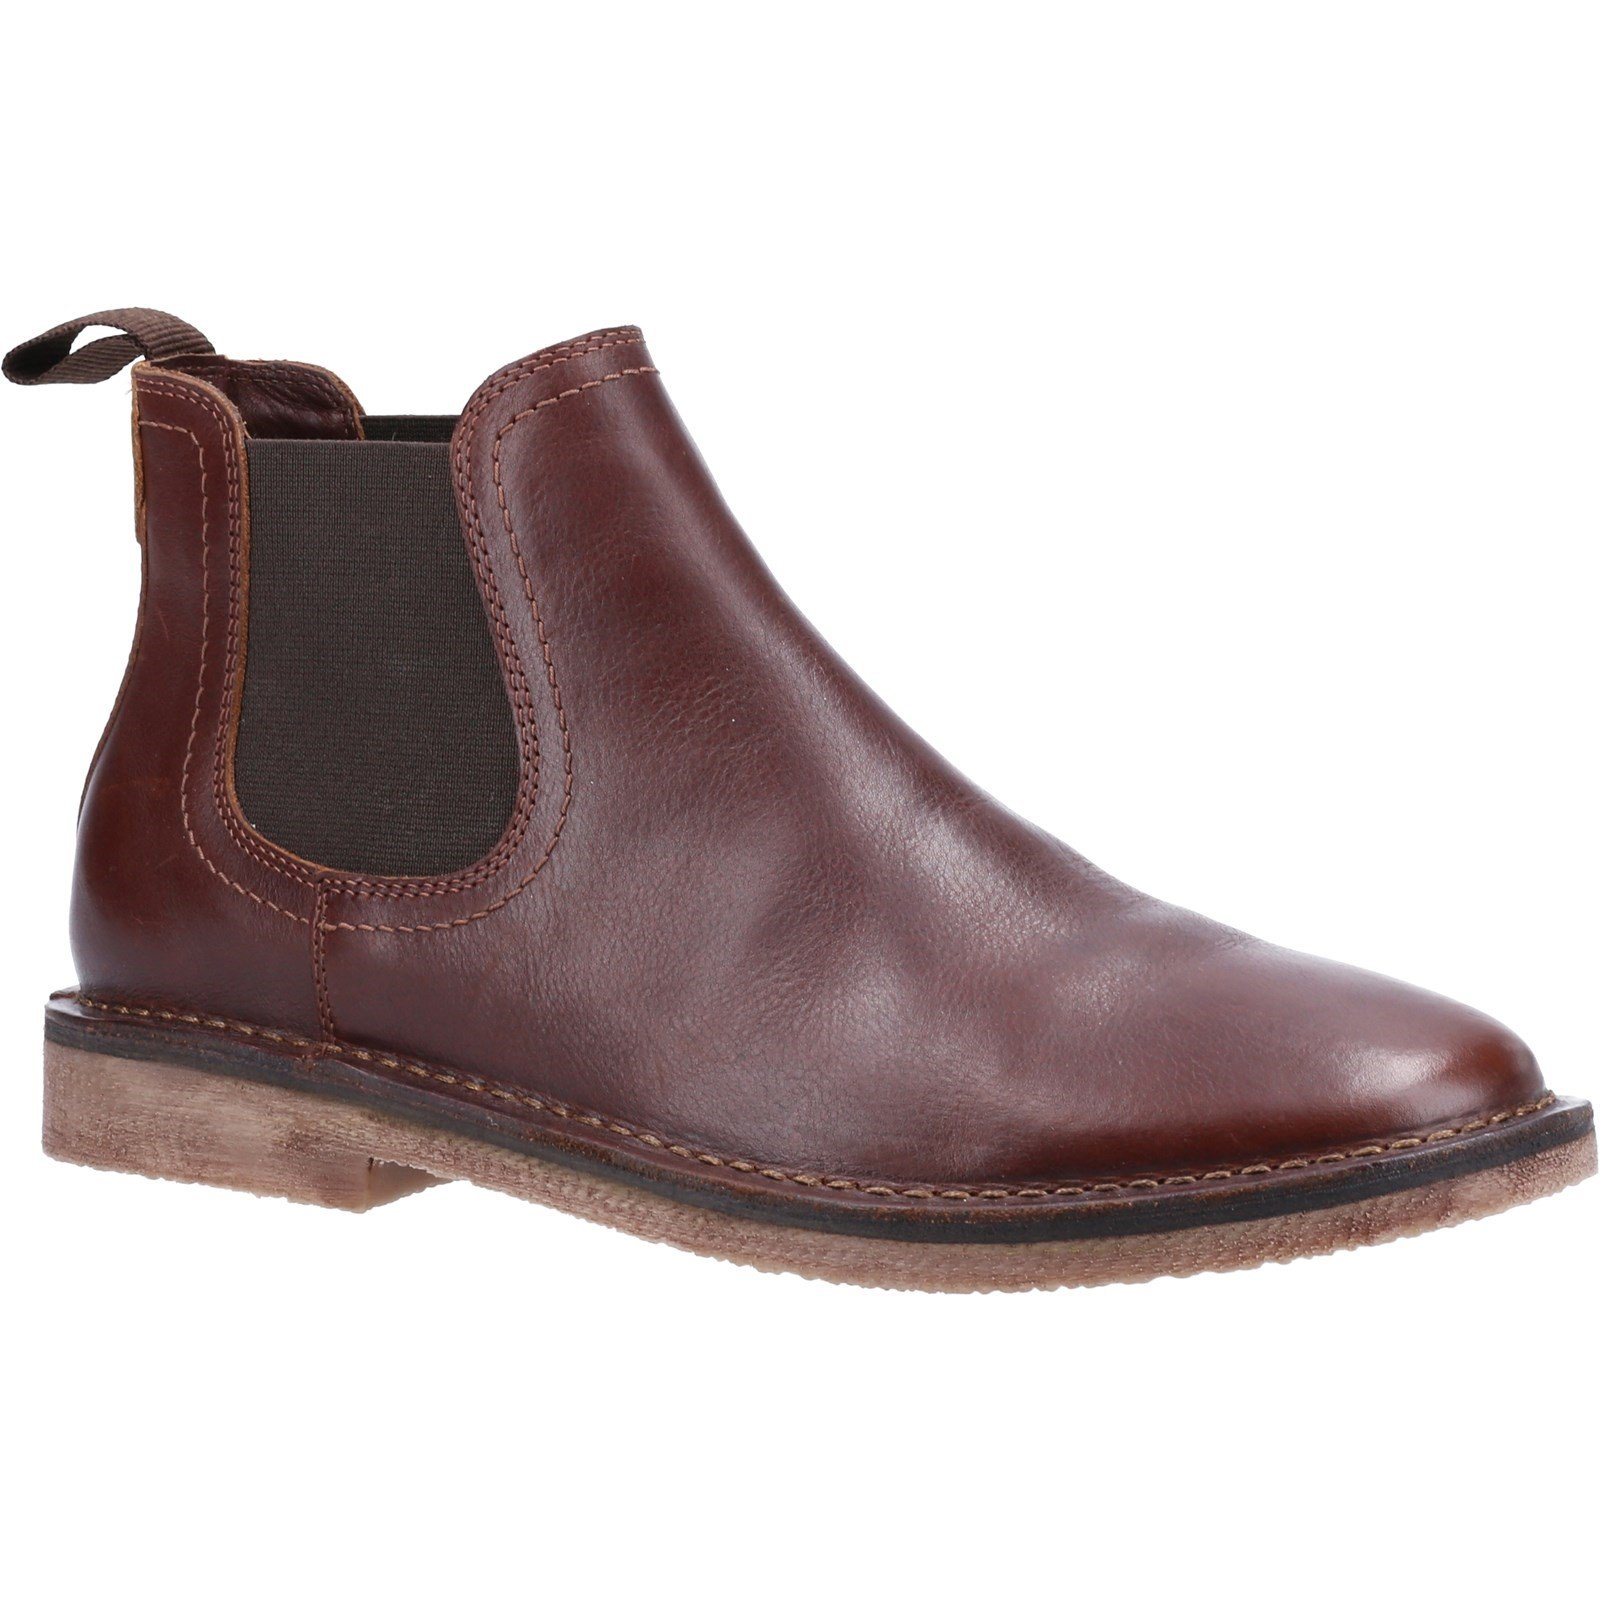 Hush Puppies Men's Shaun Leather Chelsea Boot Various Colours 32897 - Brown 11